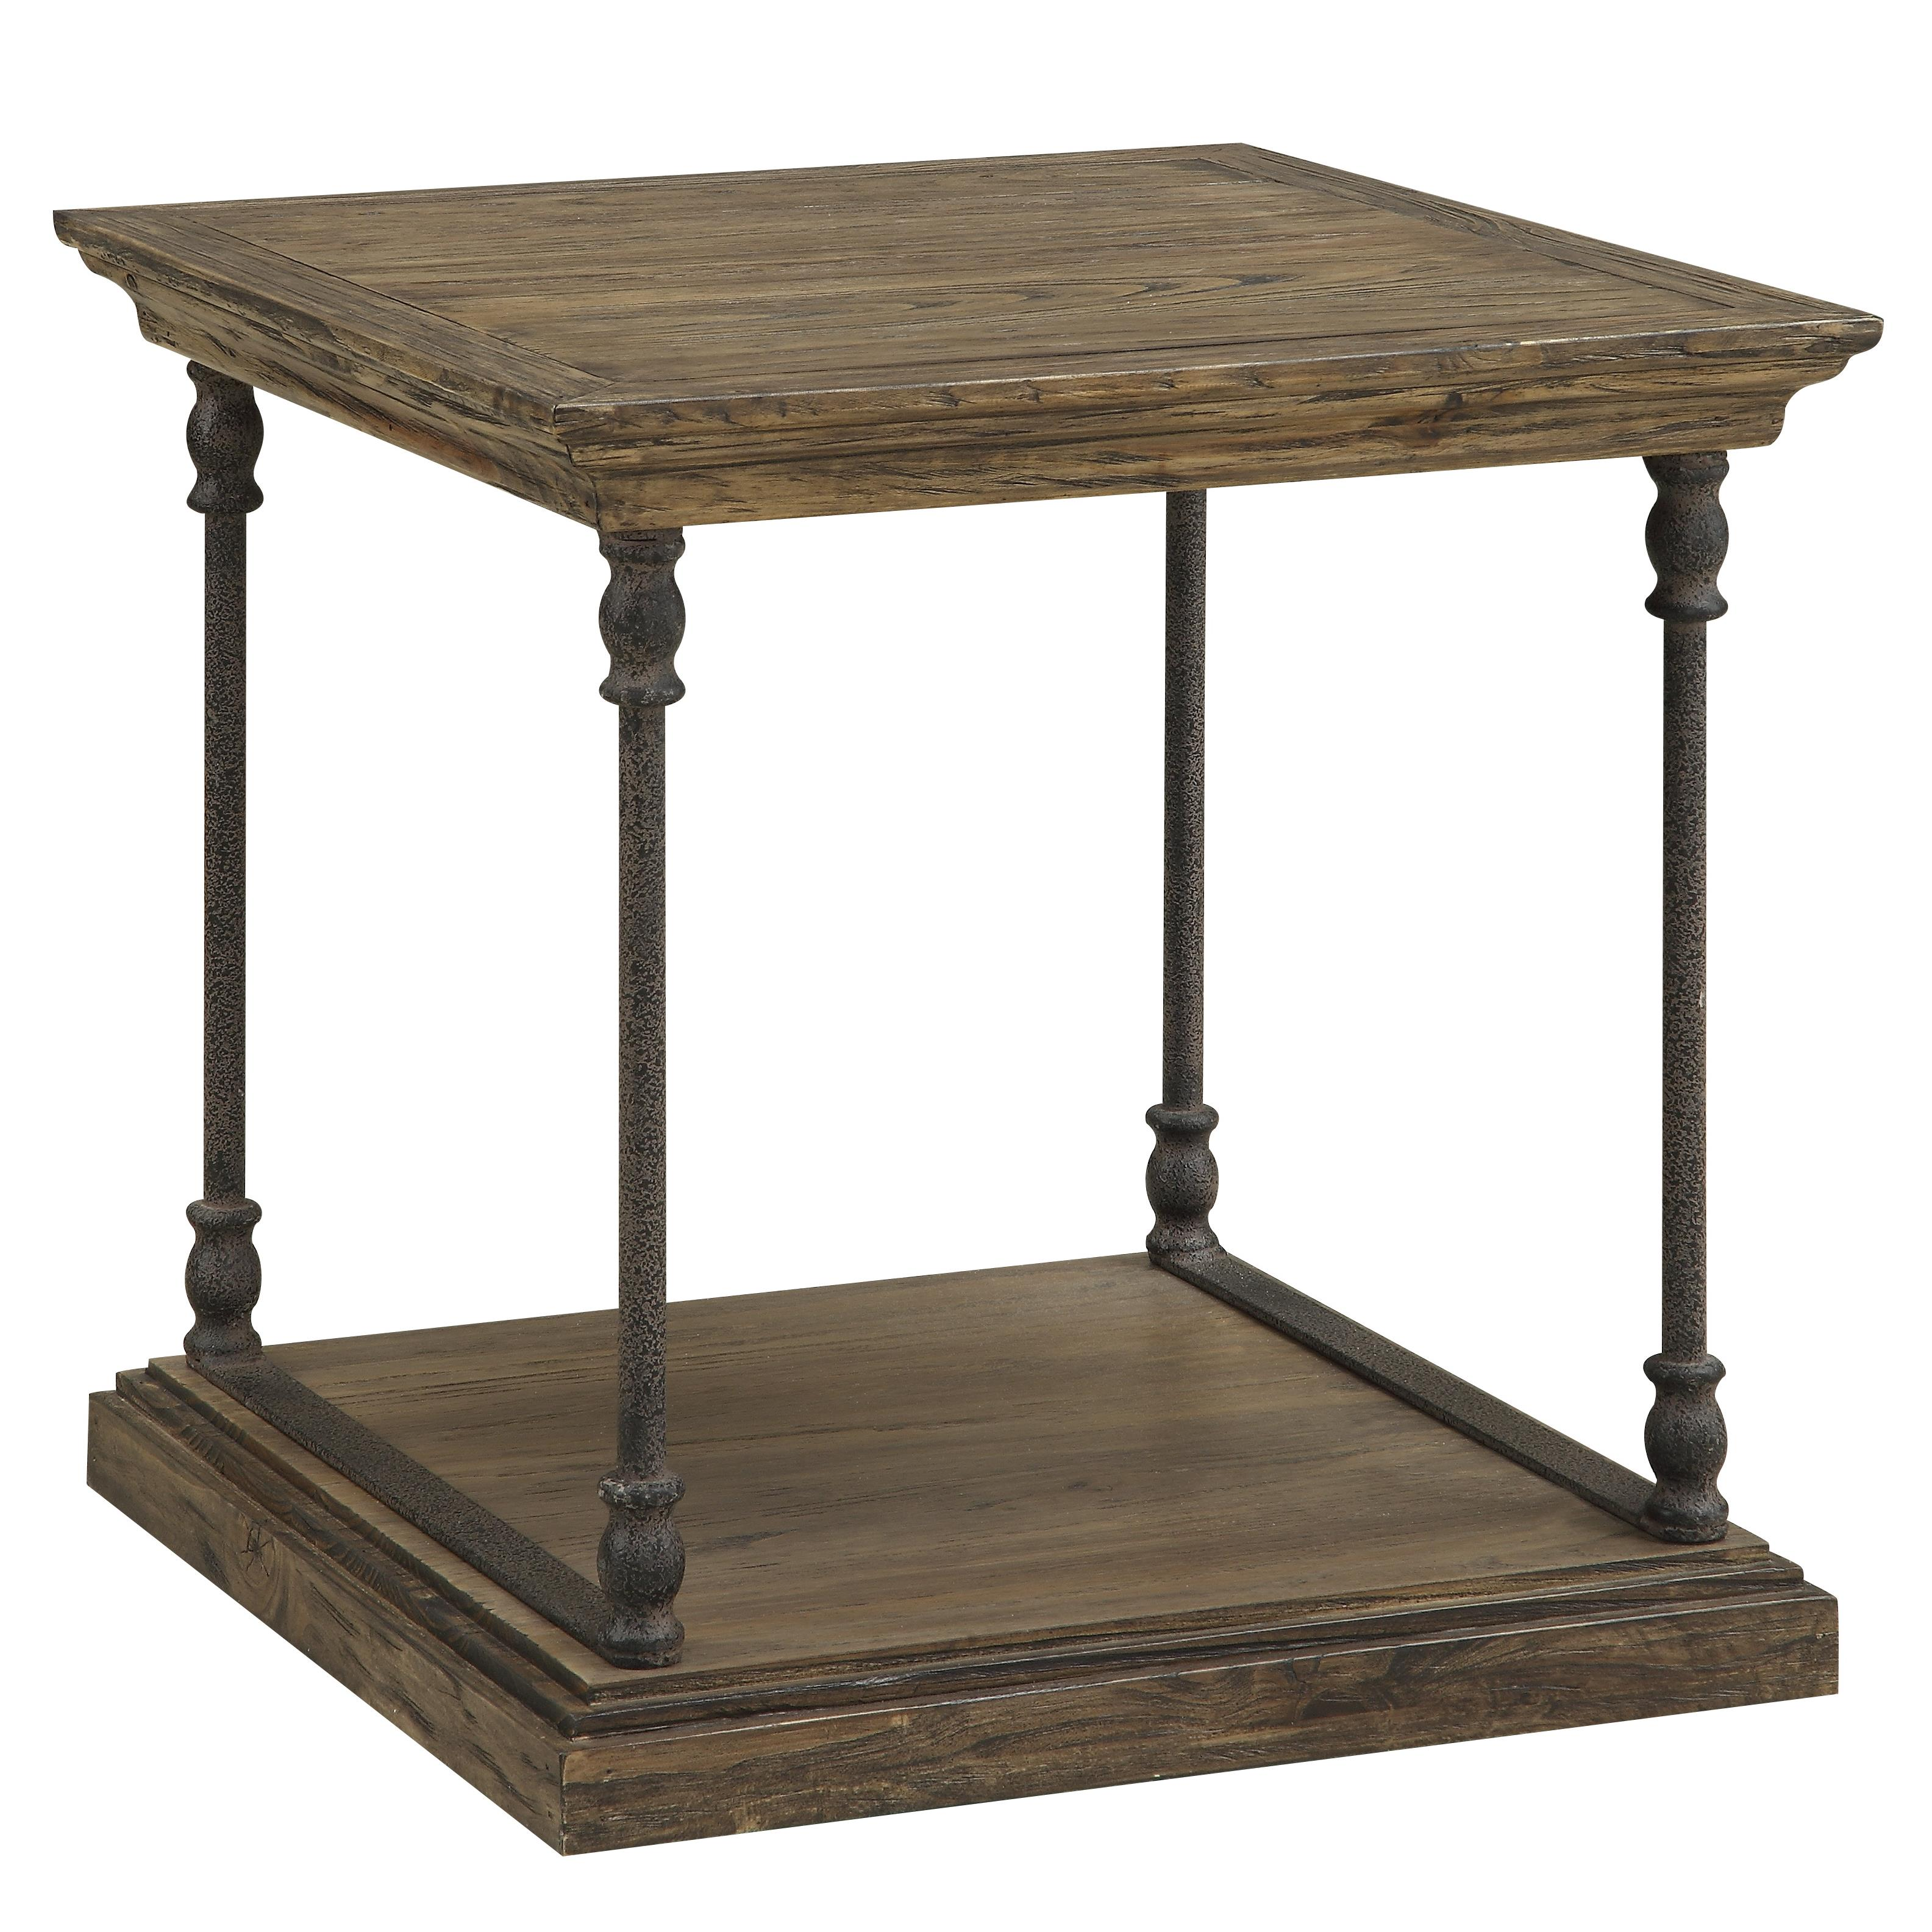 C2C Accents End Table by C2C at Walker's Furniture